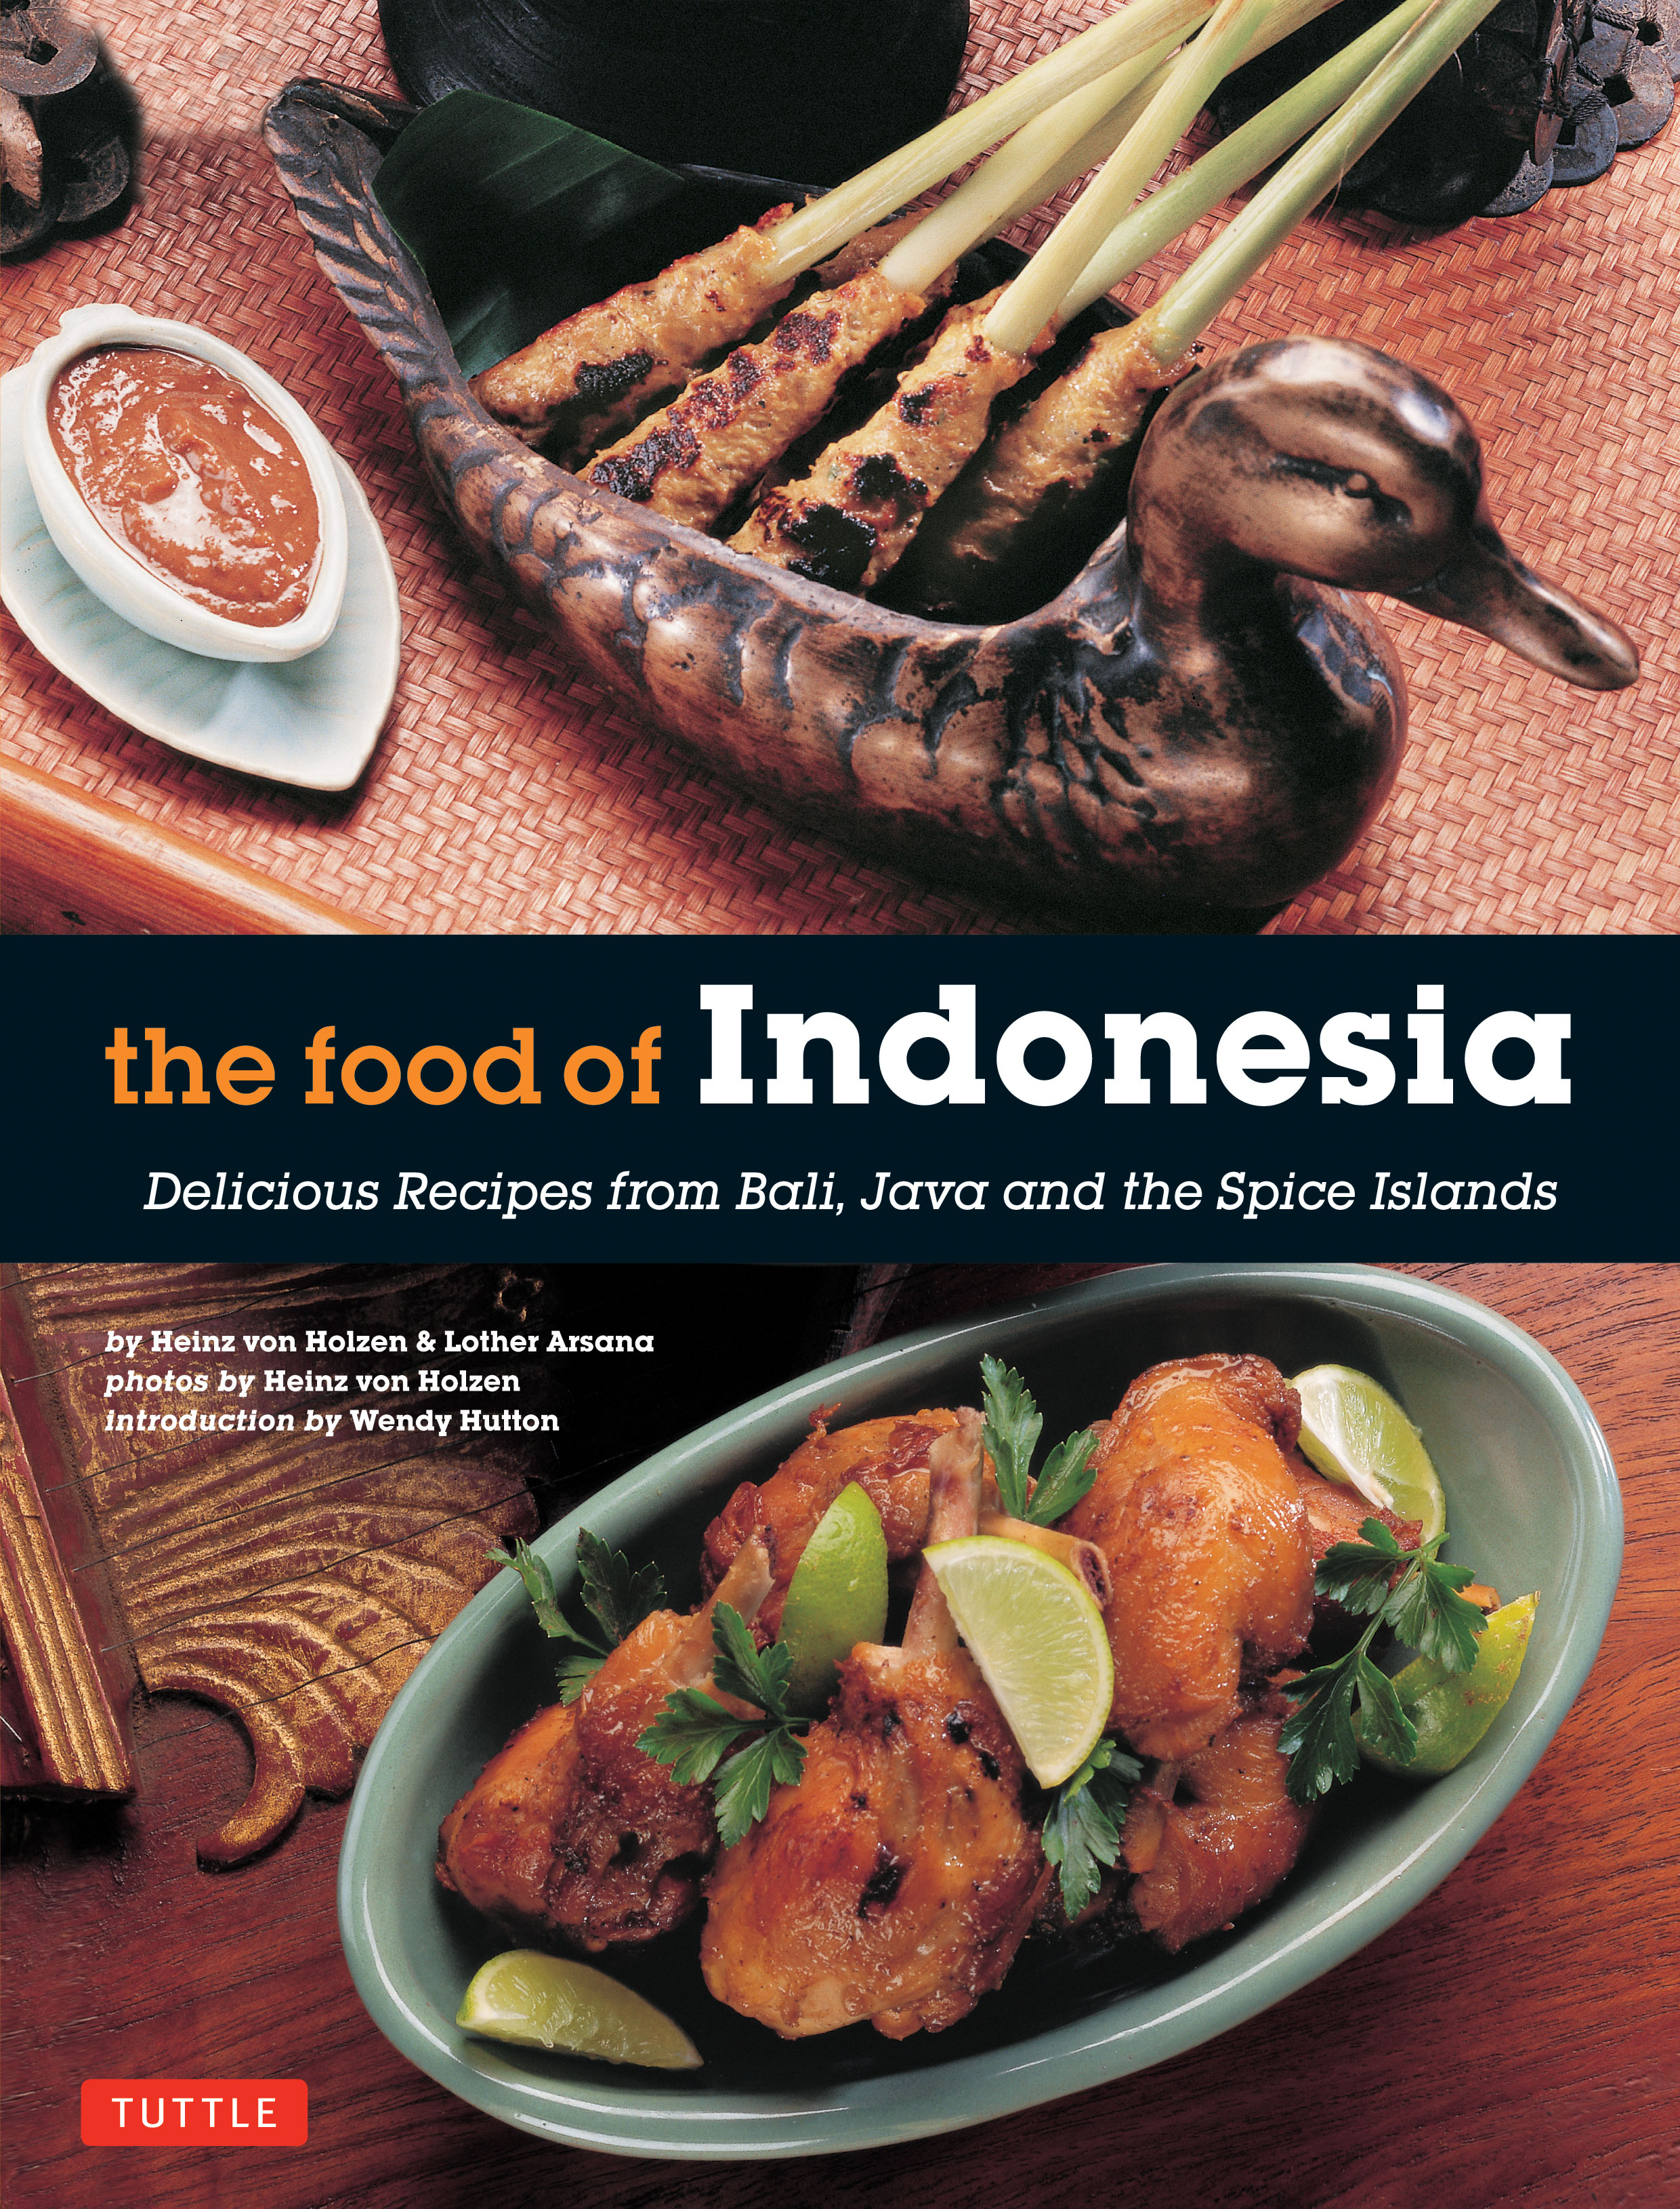 The food of indonesia newsouth books this book introduces a sampling of the most popular recipes from across the archipelago included are spicy forumfinder Images